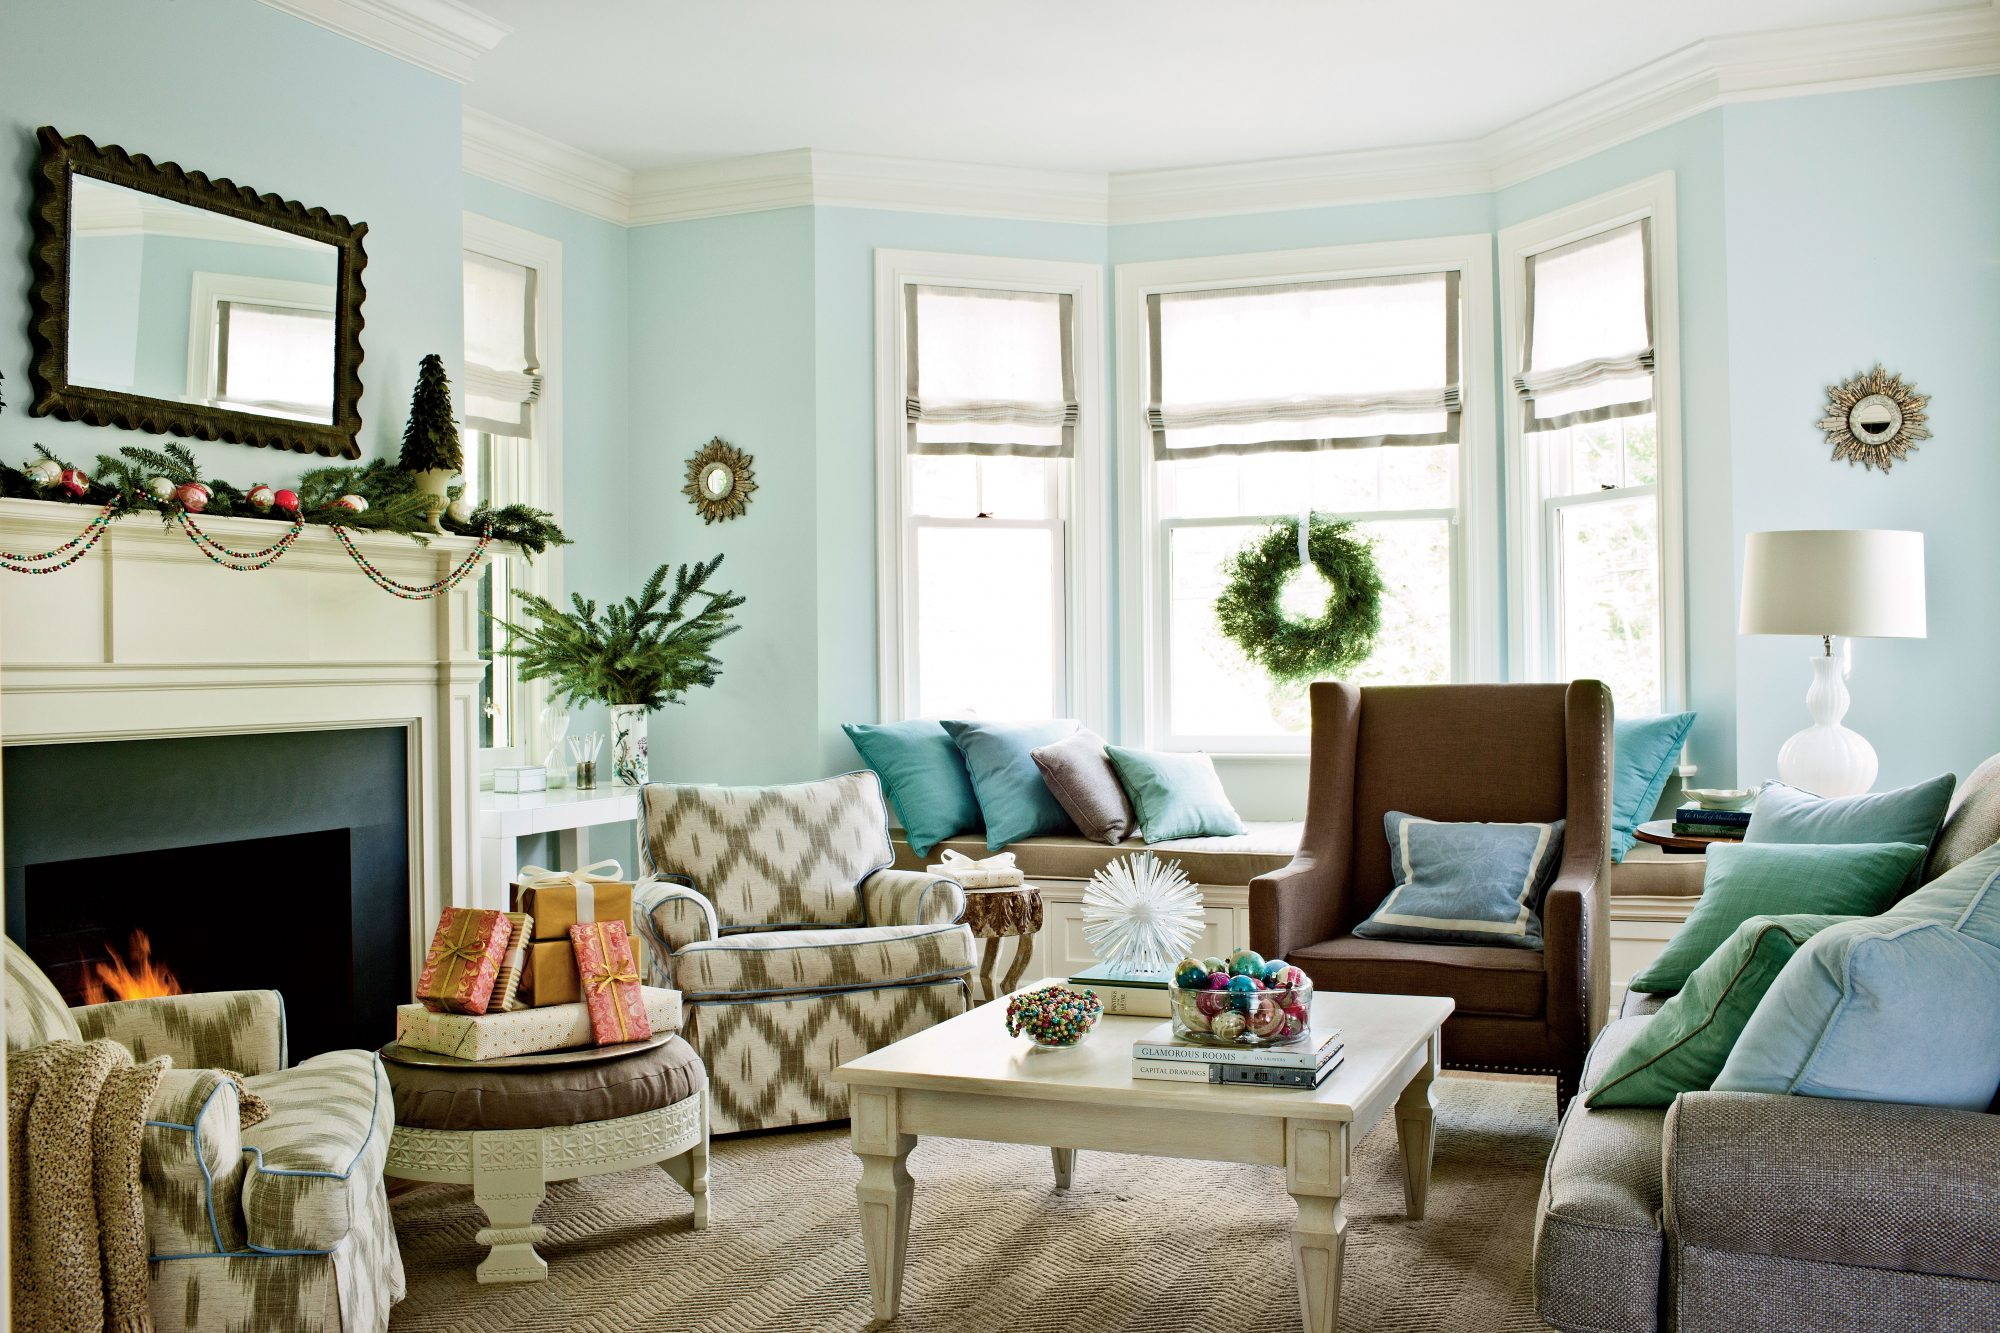 Sarah Tuttle Living Room Decorated for Christmas. Our Favorite Living Rooms Decorated for Christmas   Southern Living